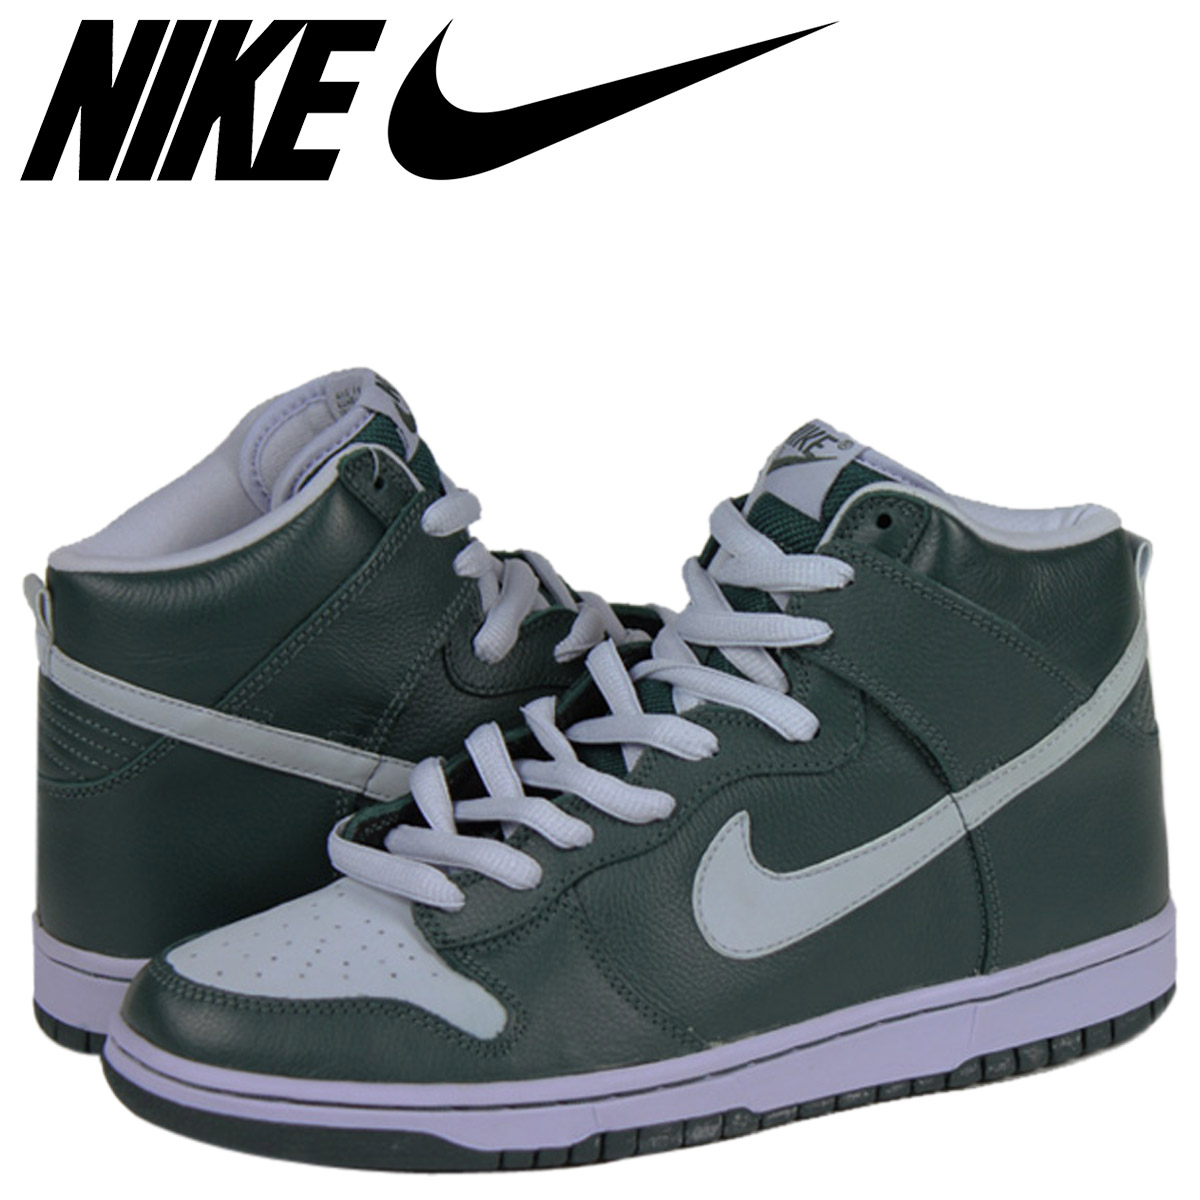 meilleures baskets 53360 acd09 NIKE Nike dunk sneakers DUNK HIGH PRO SB GHOST dunk high professional S B  ghost 305,050-302 green men